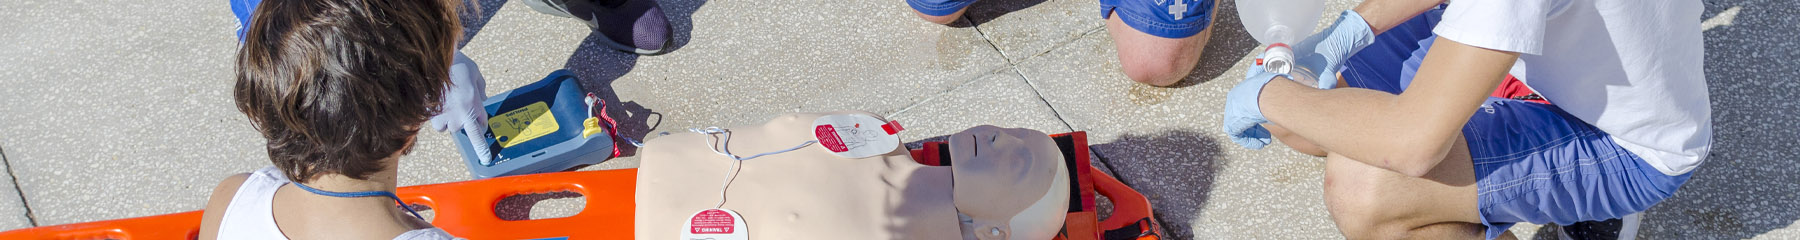 Lifeguard safety training with dummy